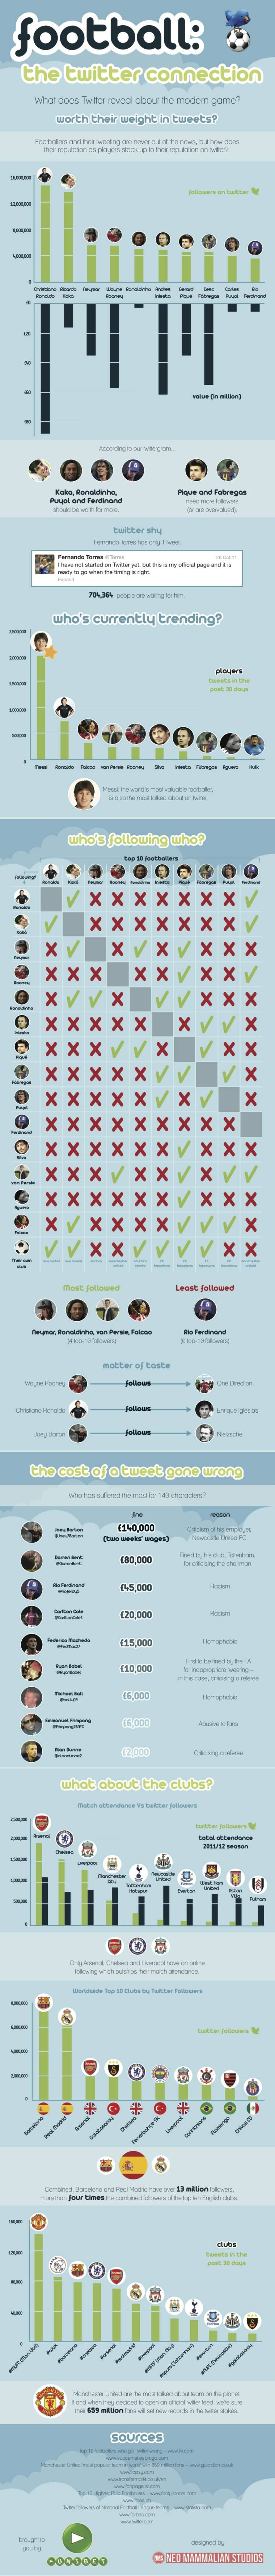 The Football & Twitter Infographic